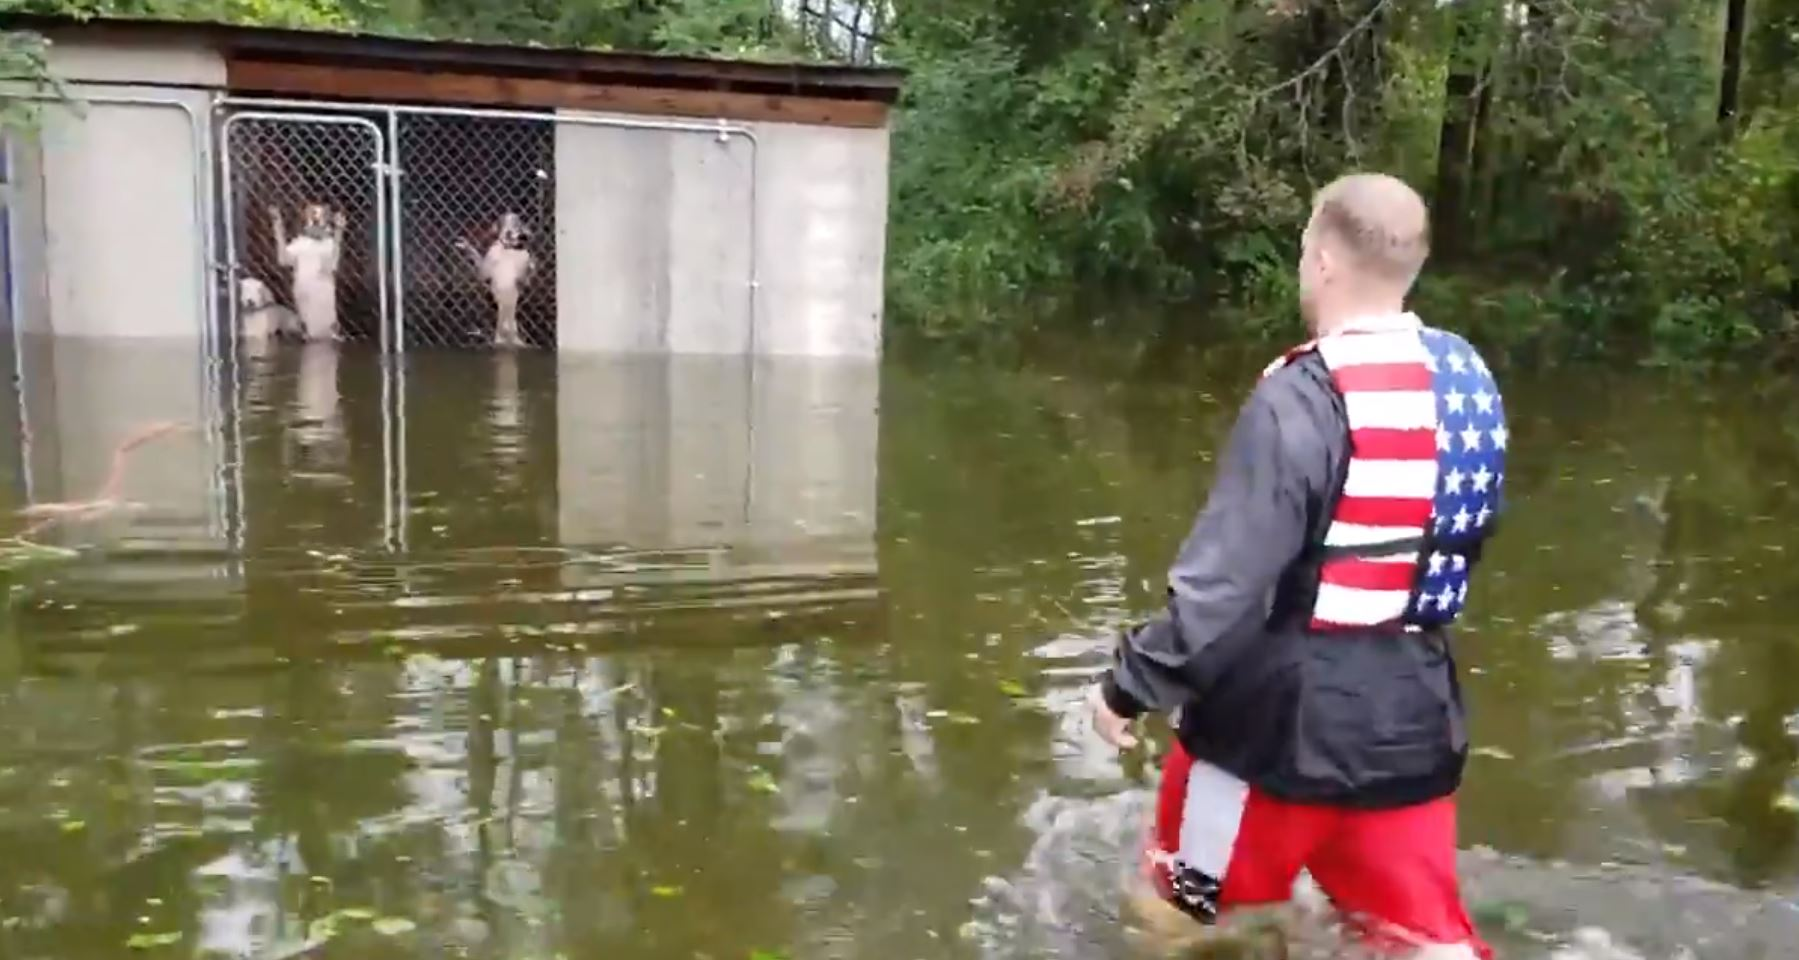 F*cken legend saves dogs from certain death in hurricane florence floodwaters